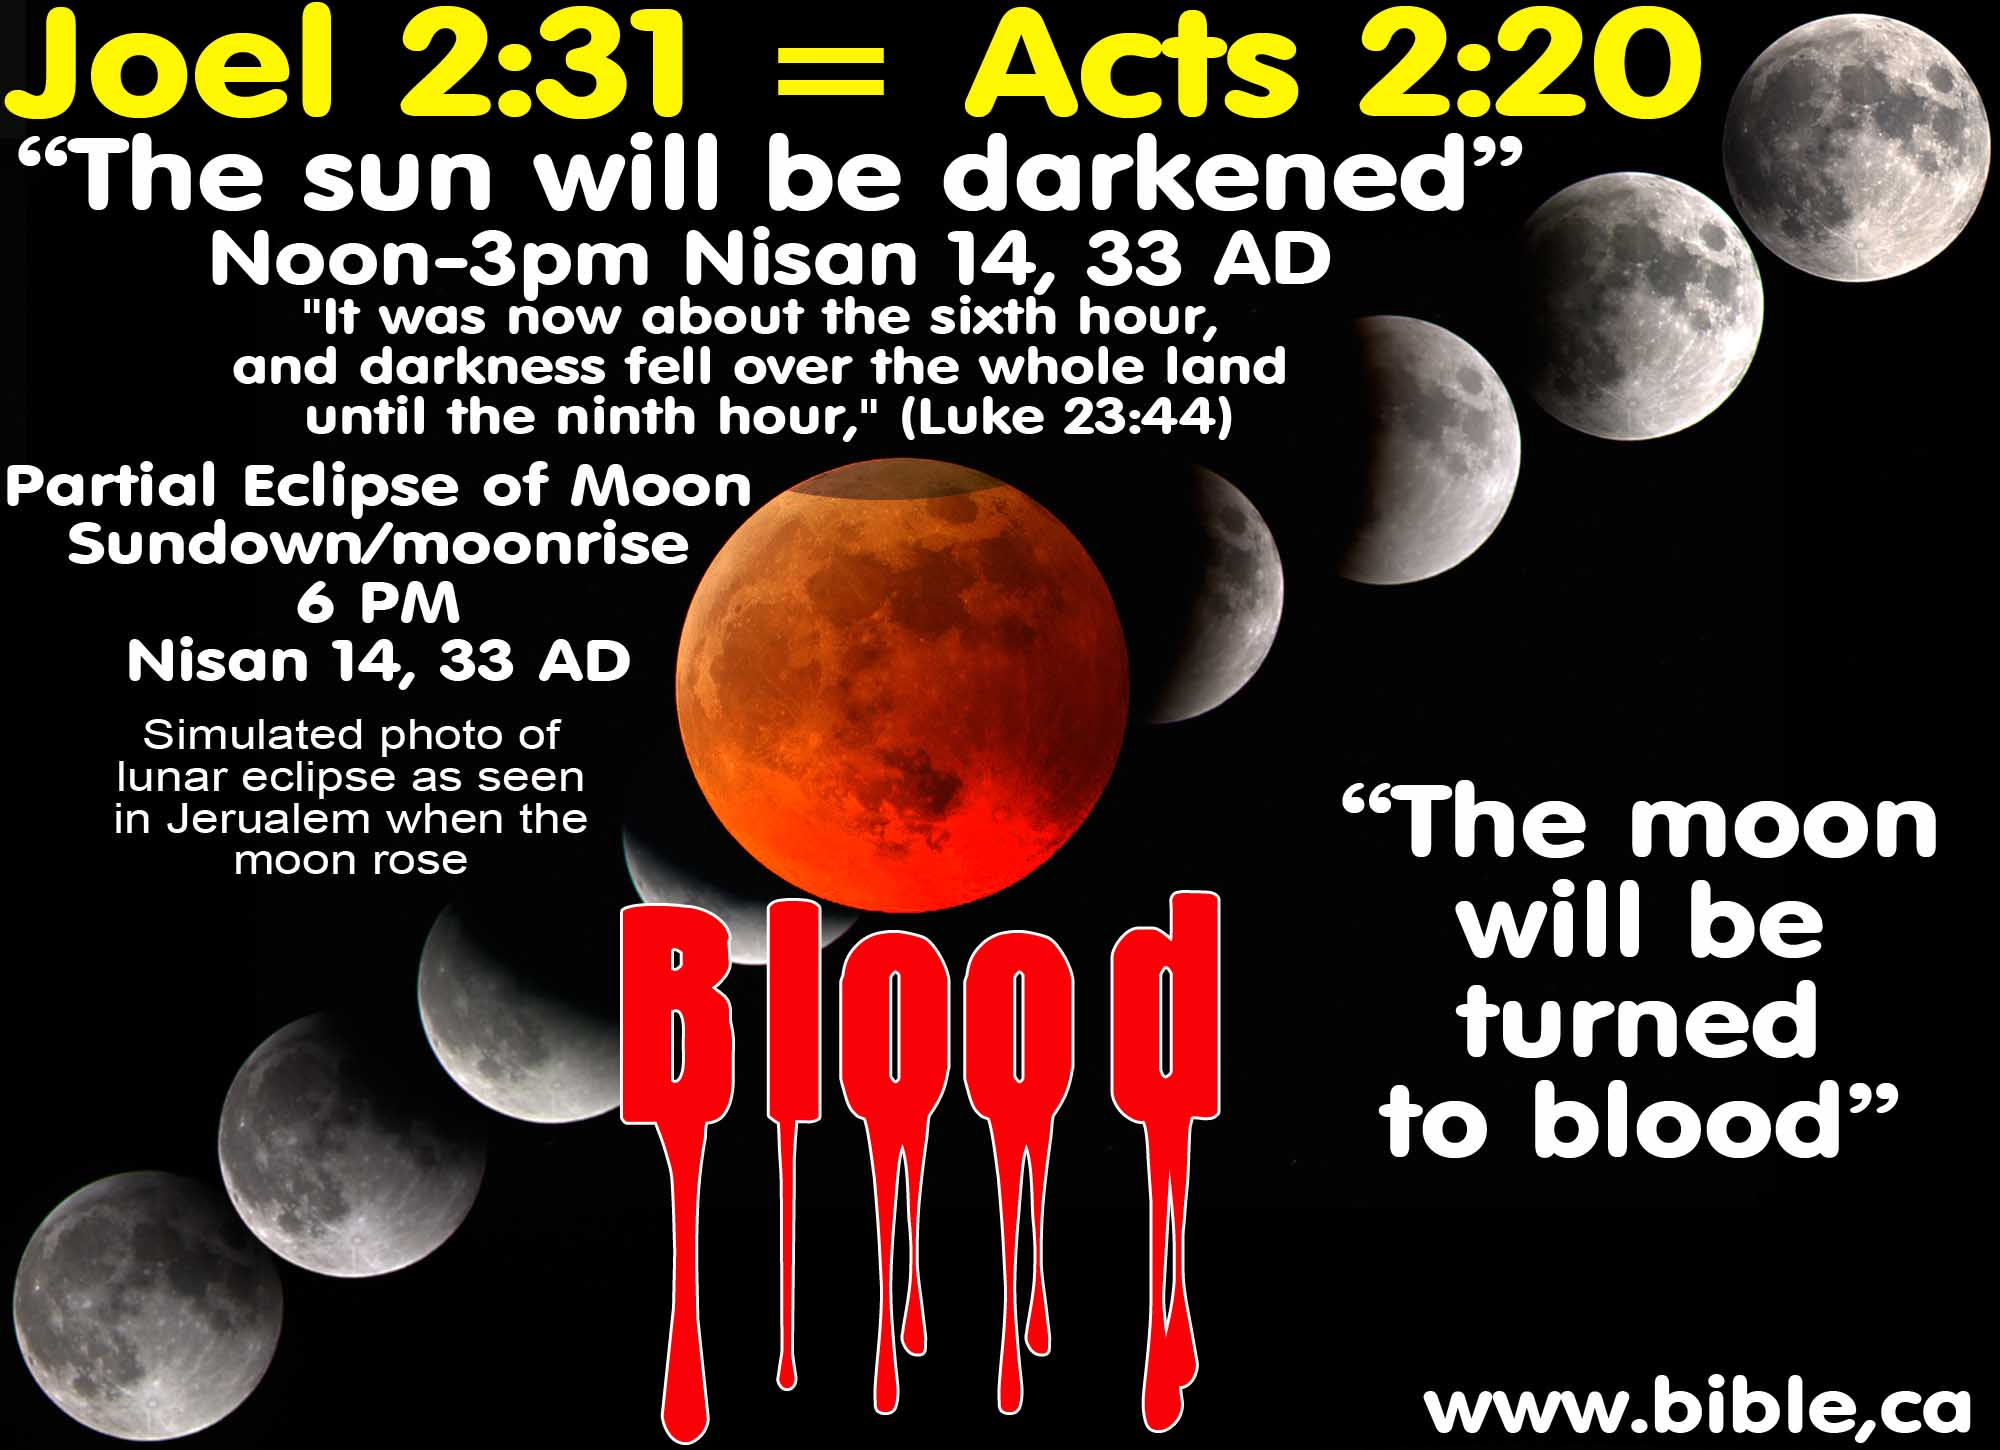 The end times terror of four blood moons